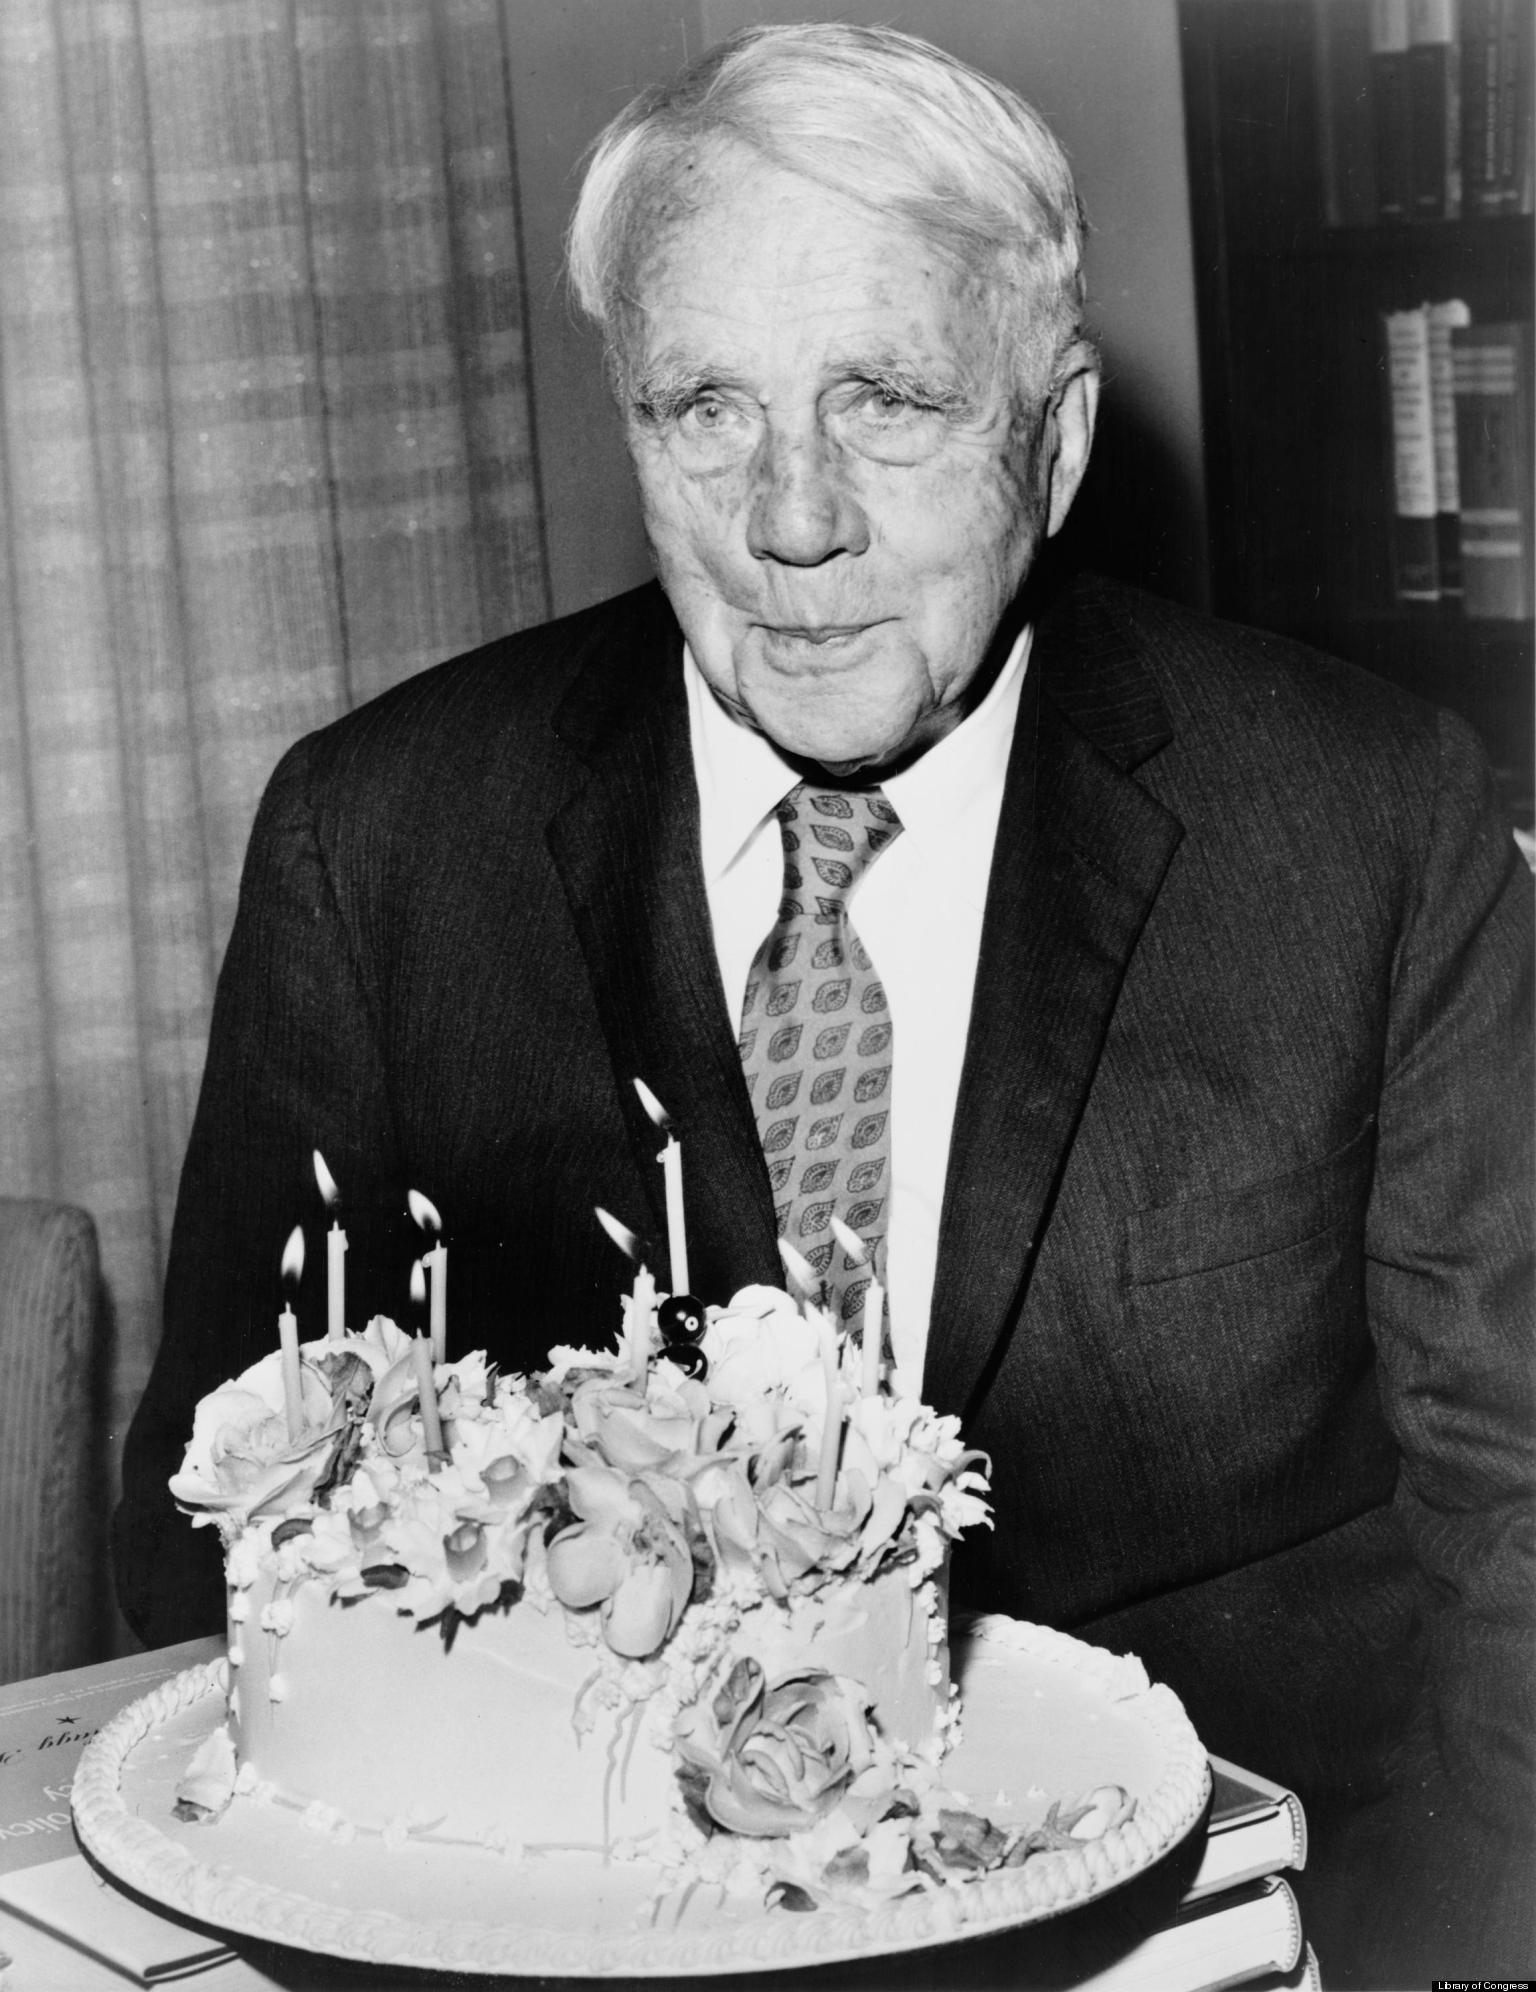 Robert Frost and his Poems